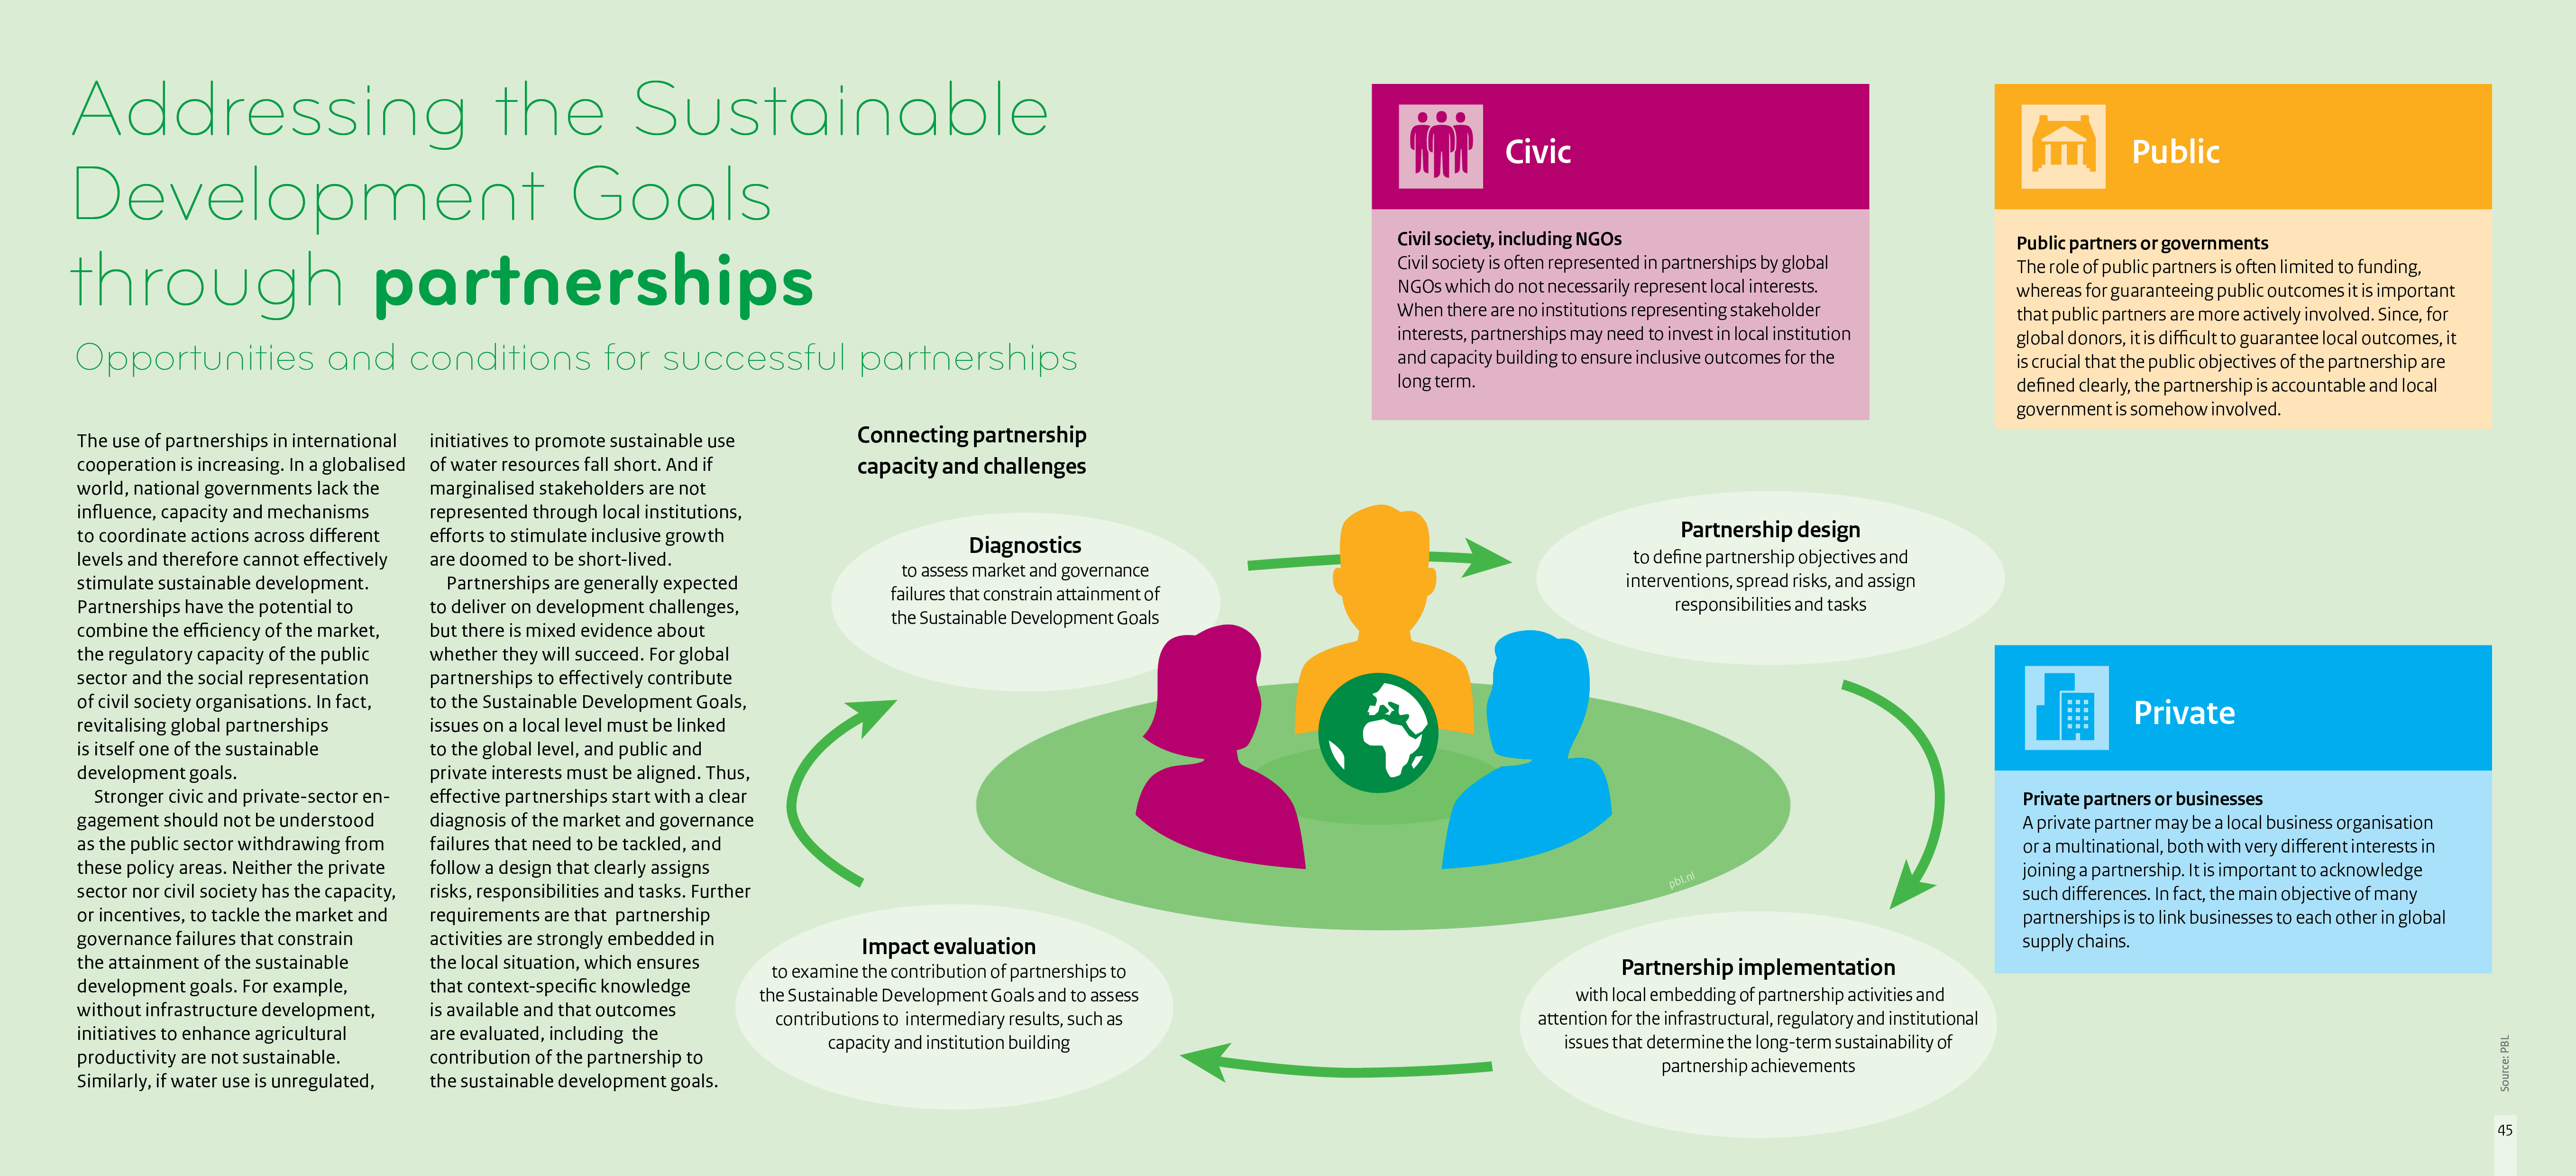 Partnerships can involve civic, public and private actors and in order to work together, require 4 steps: diagnostics, partnership design, partnership implementation and impact evaluation.